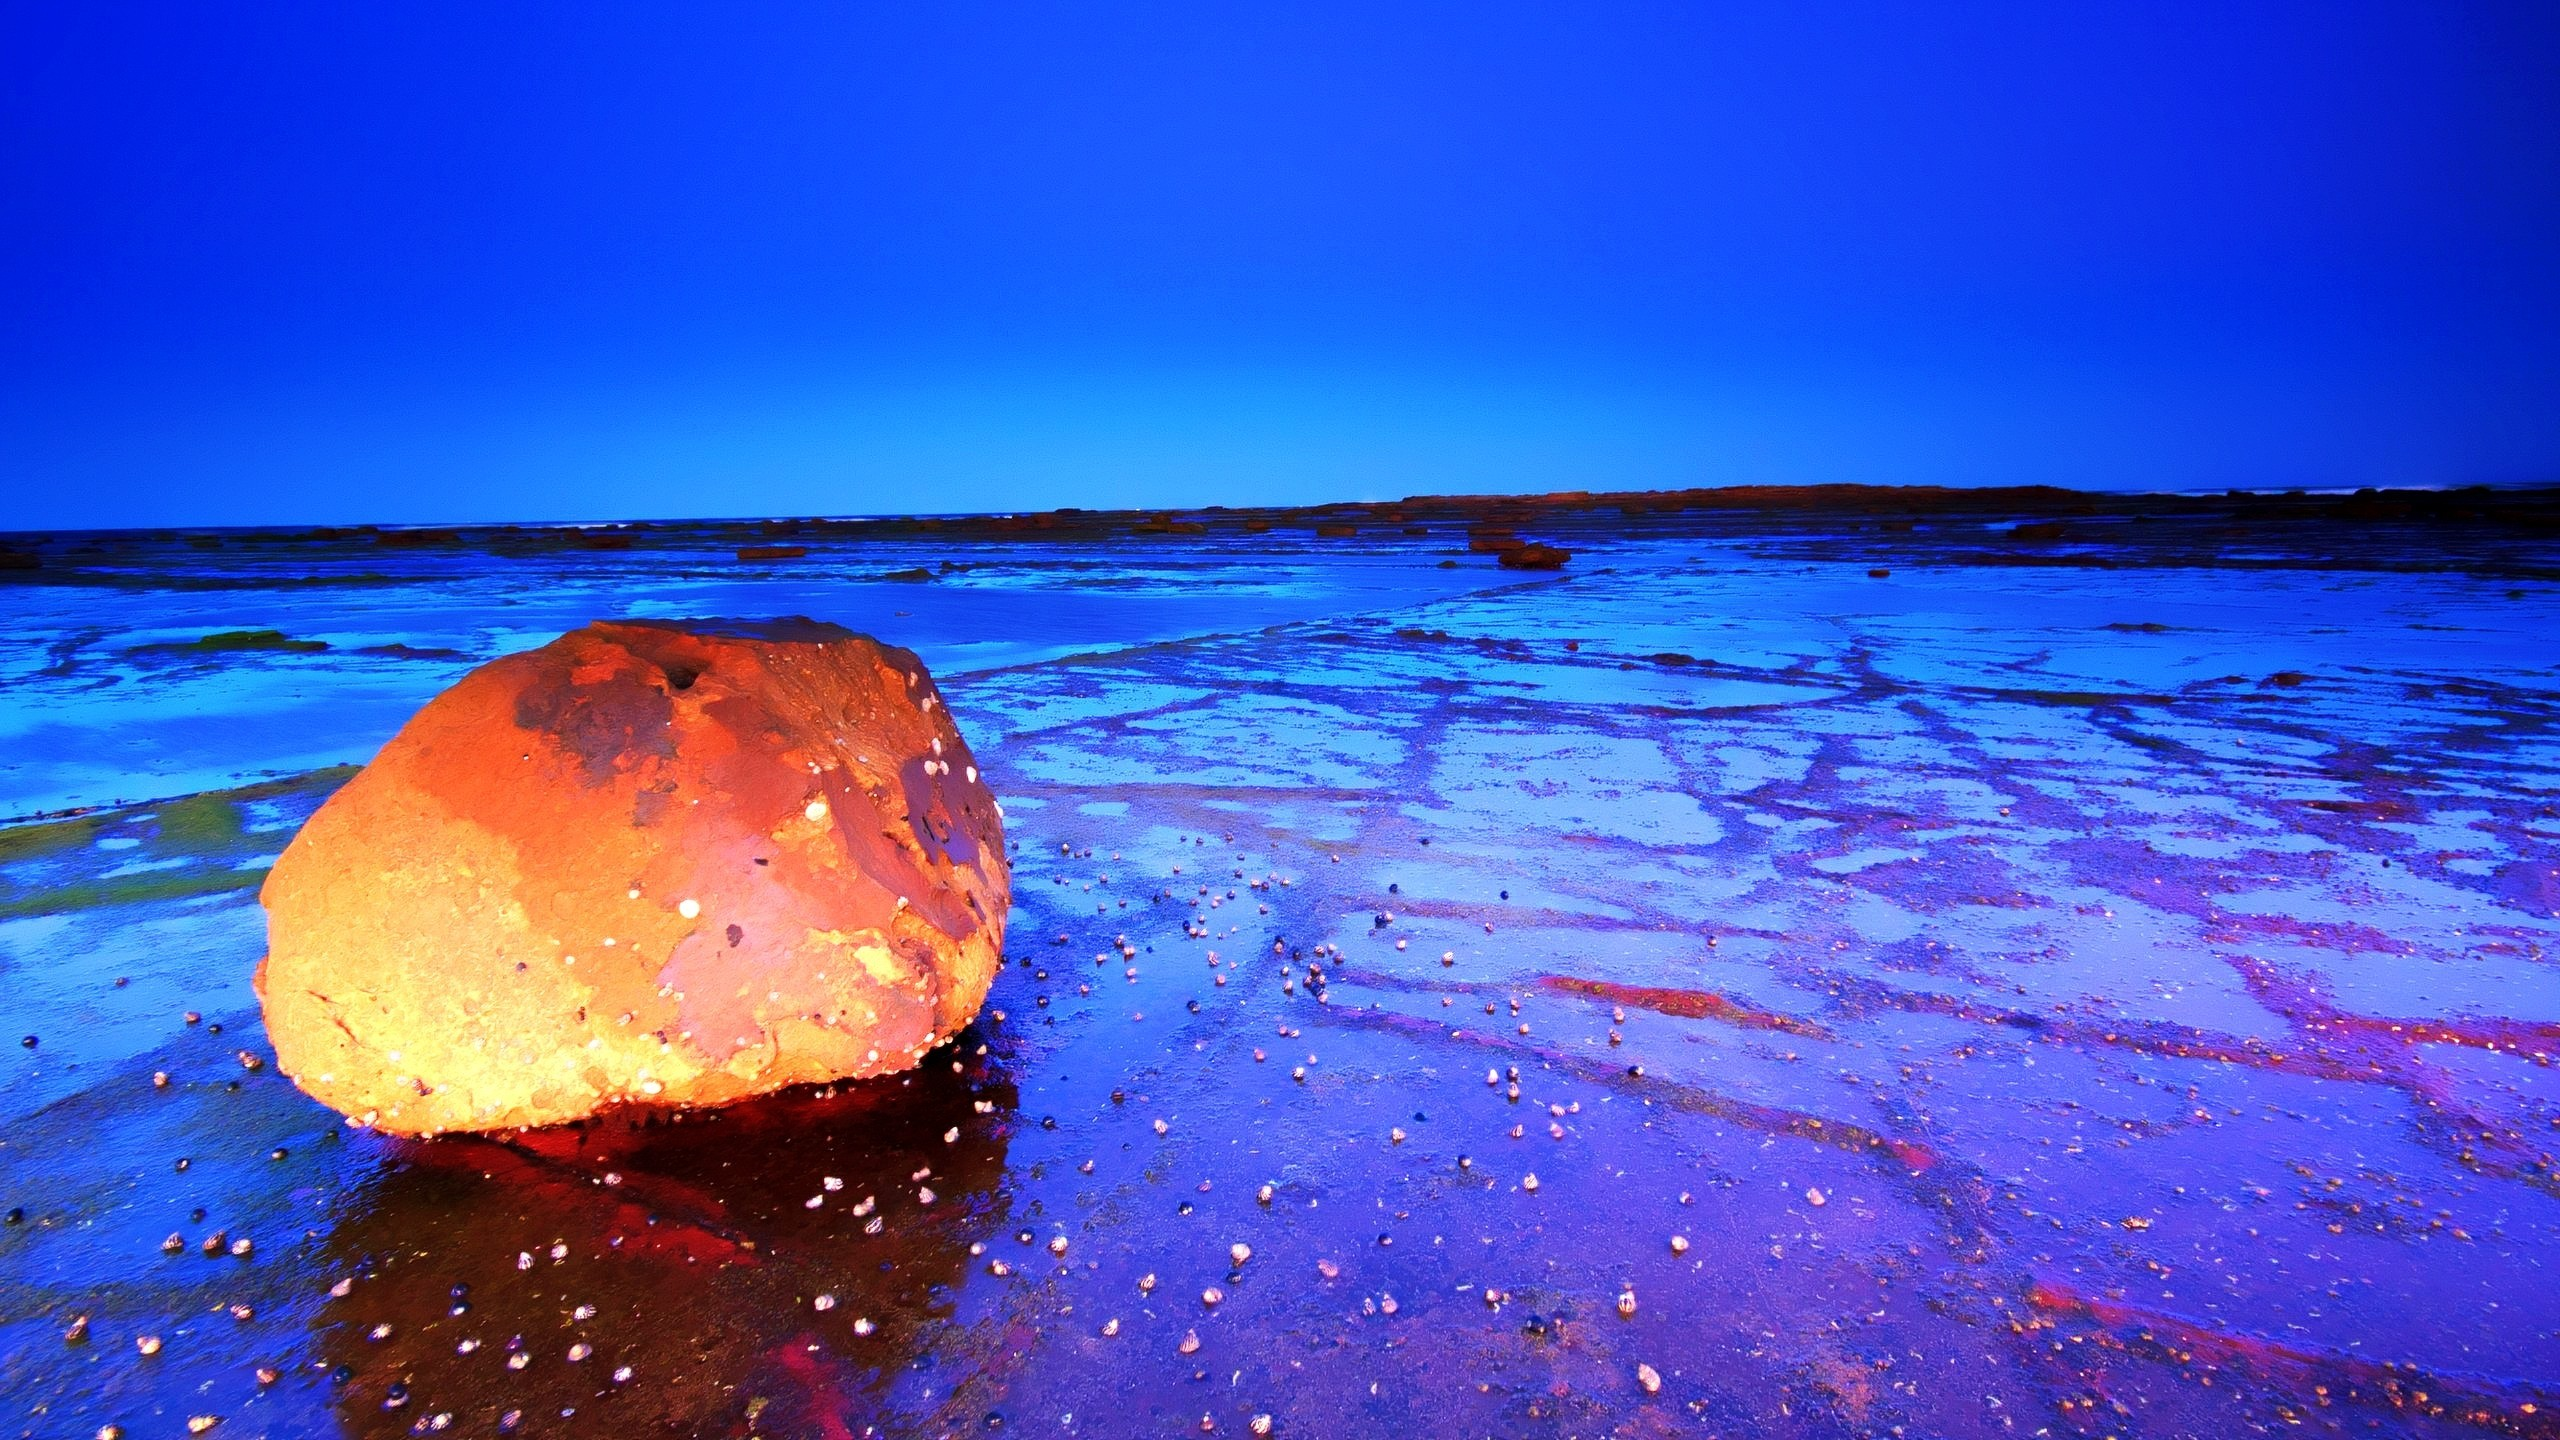 Res: 2560x1440, beach at night wallpapers wallpaper gallery a· night beach wallpapers high  definition